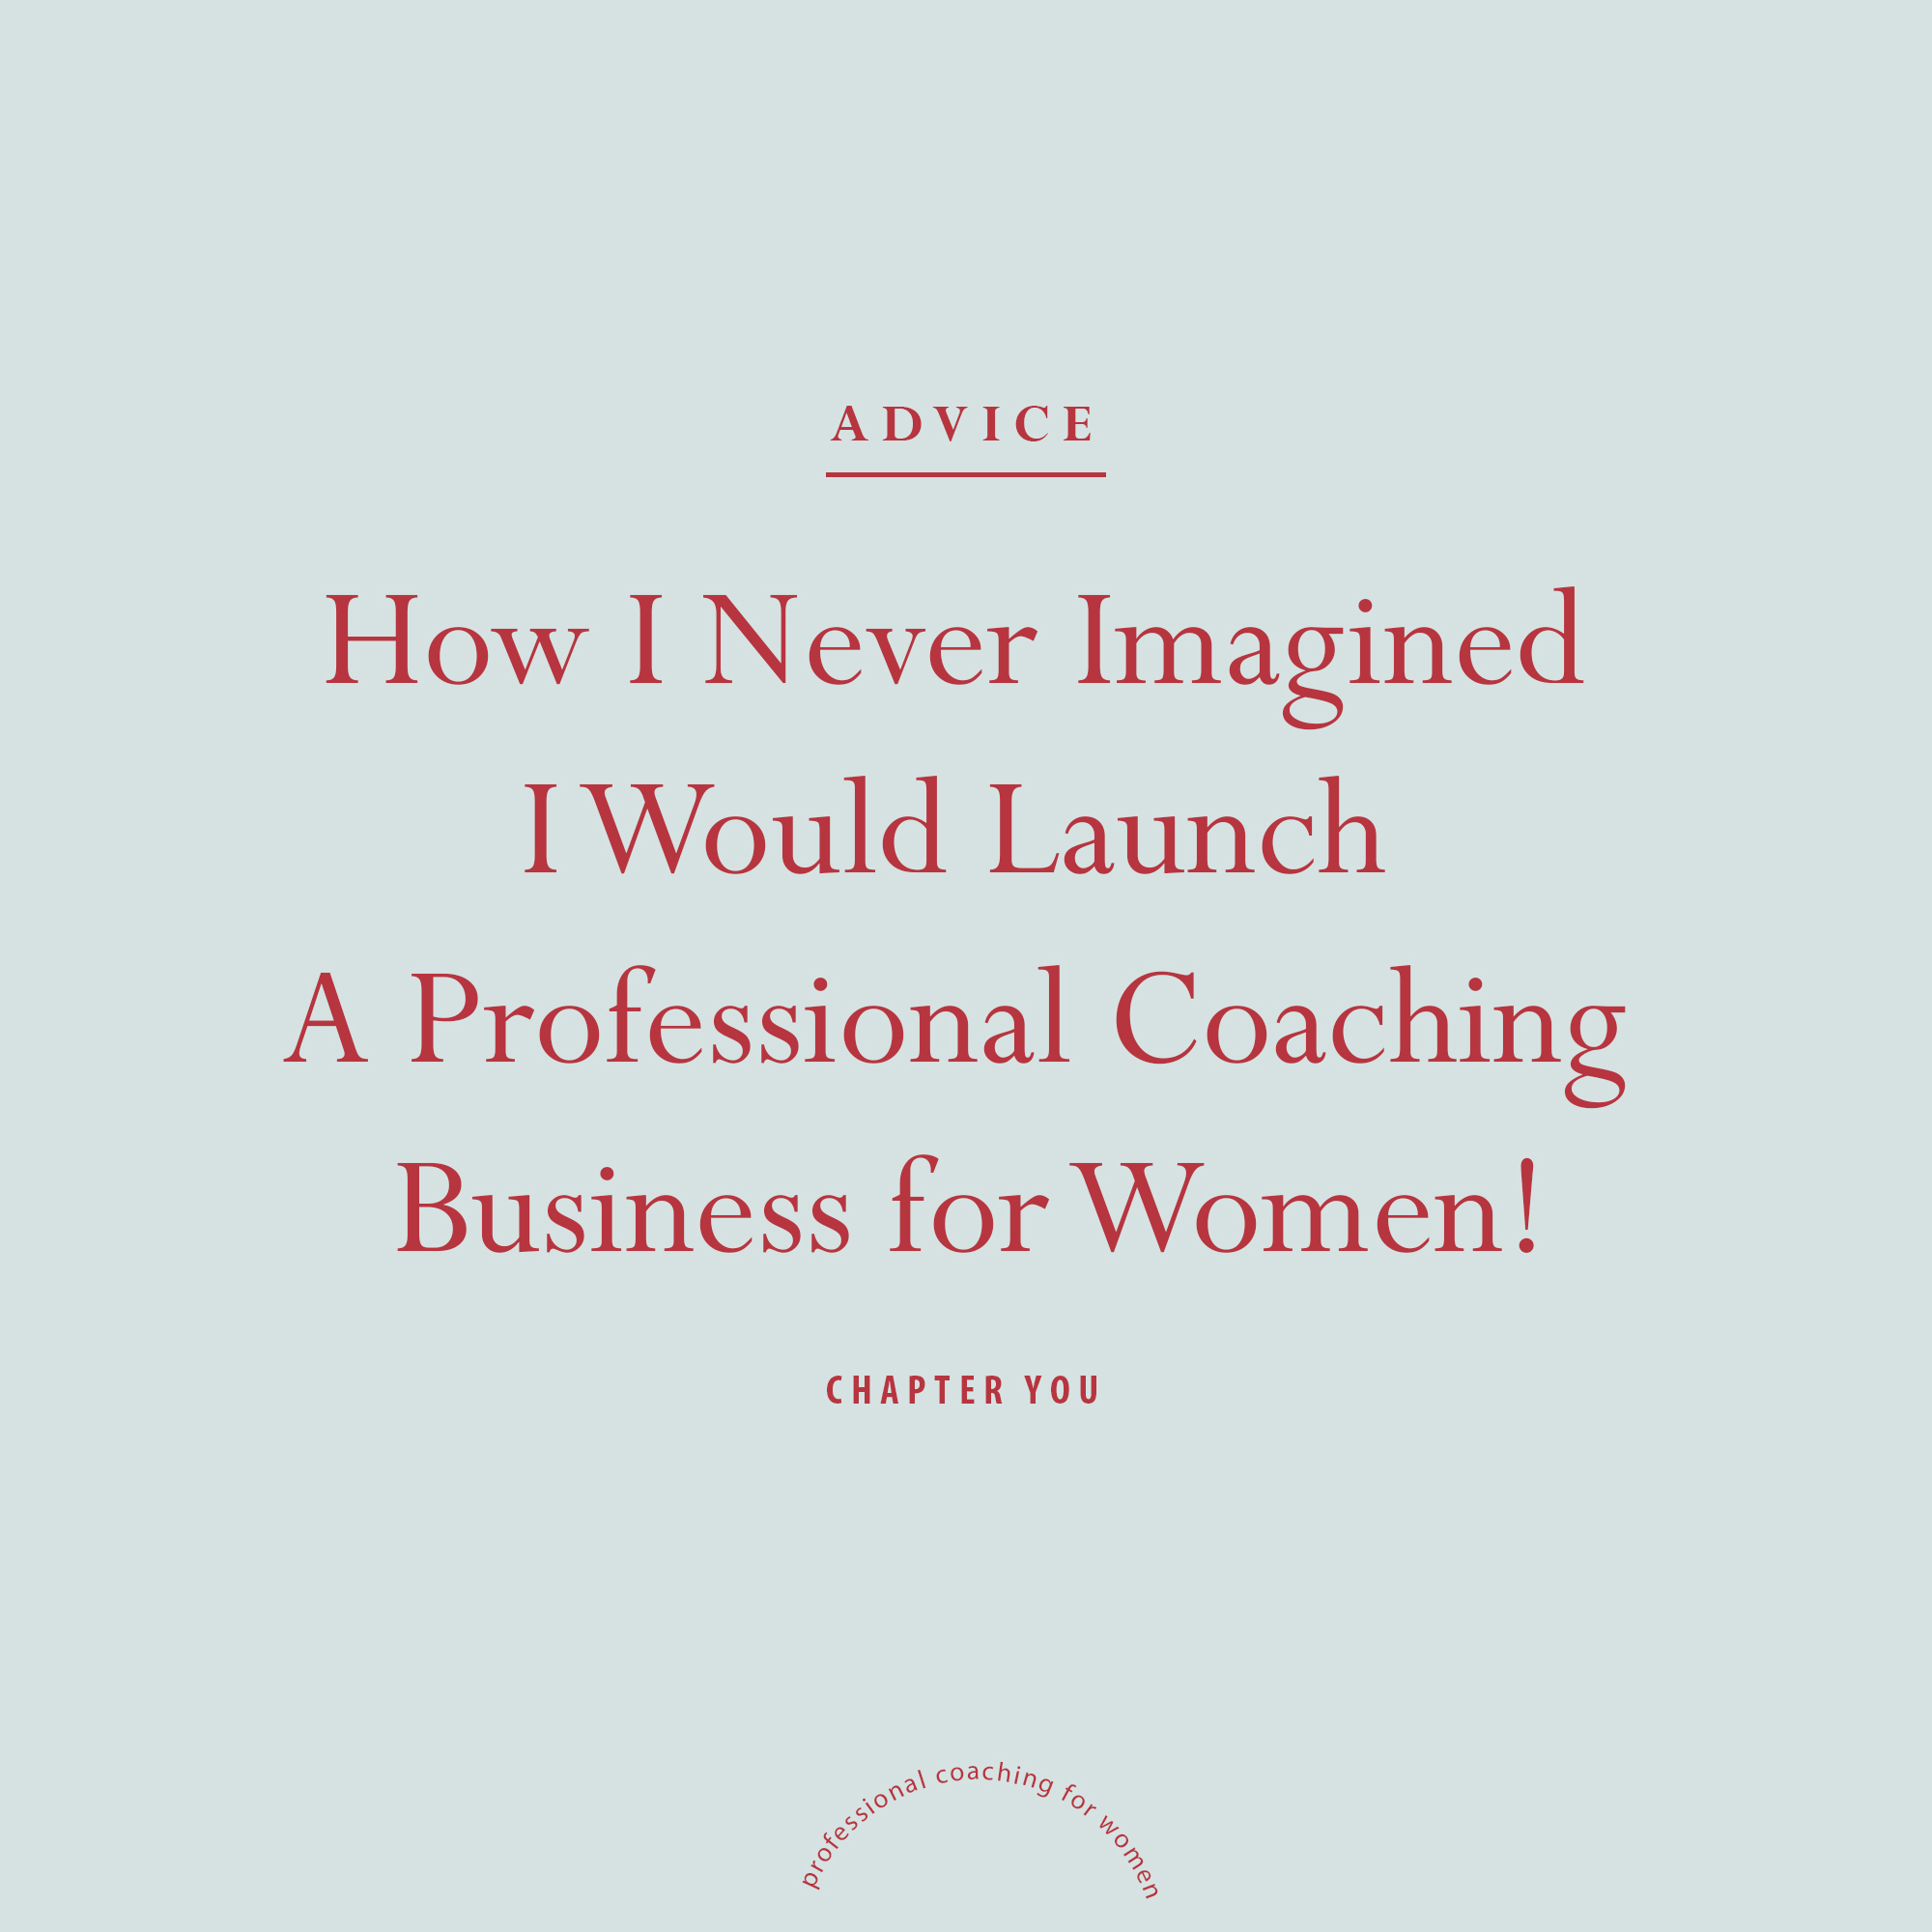 CoachingBusinessForWomen.jpg